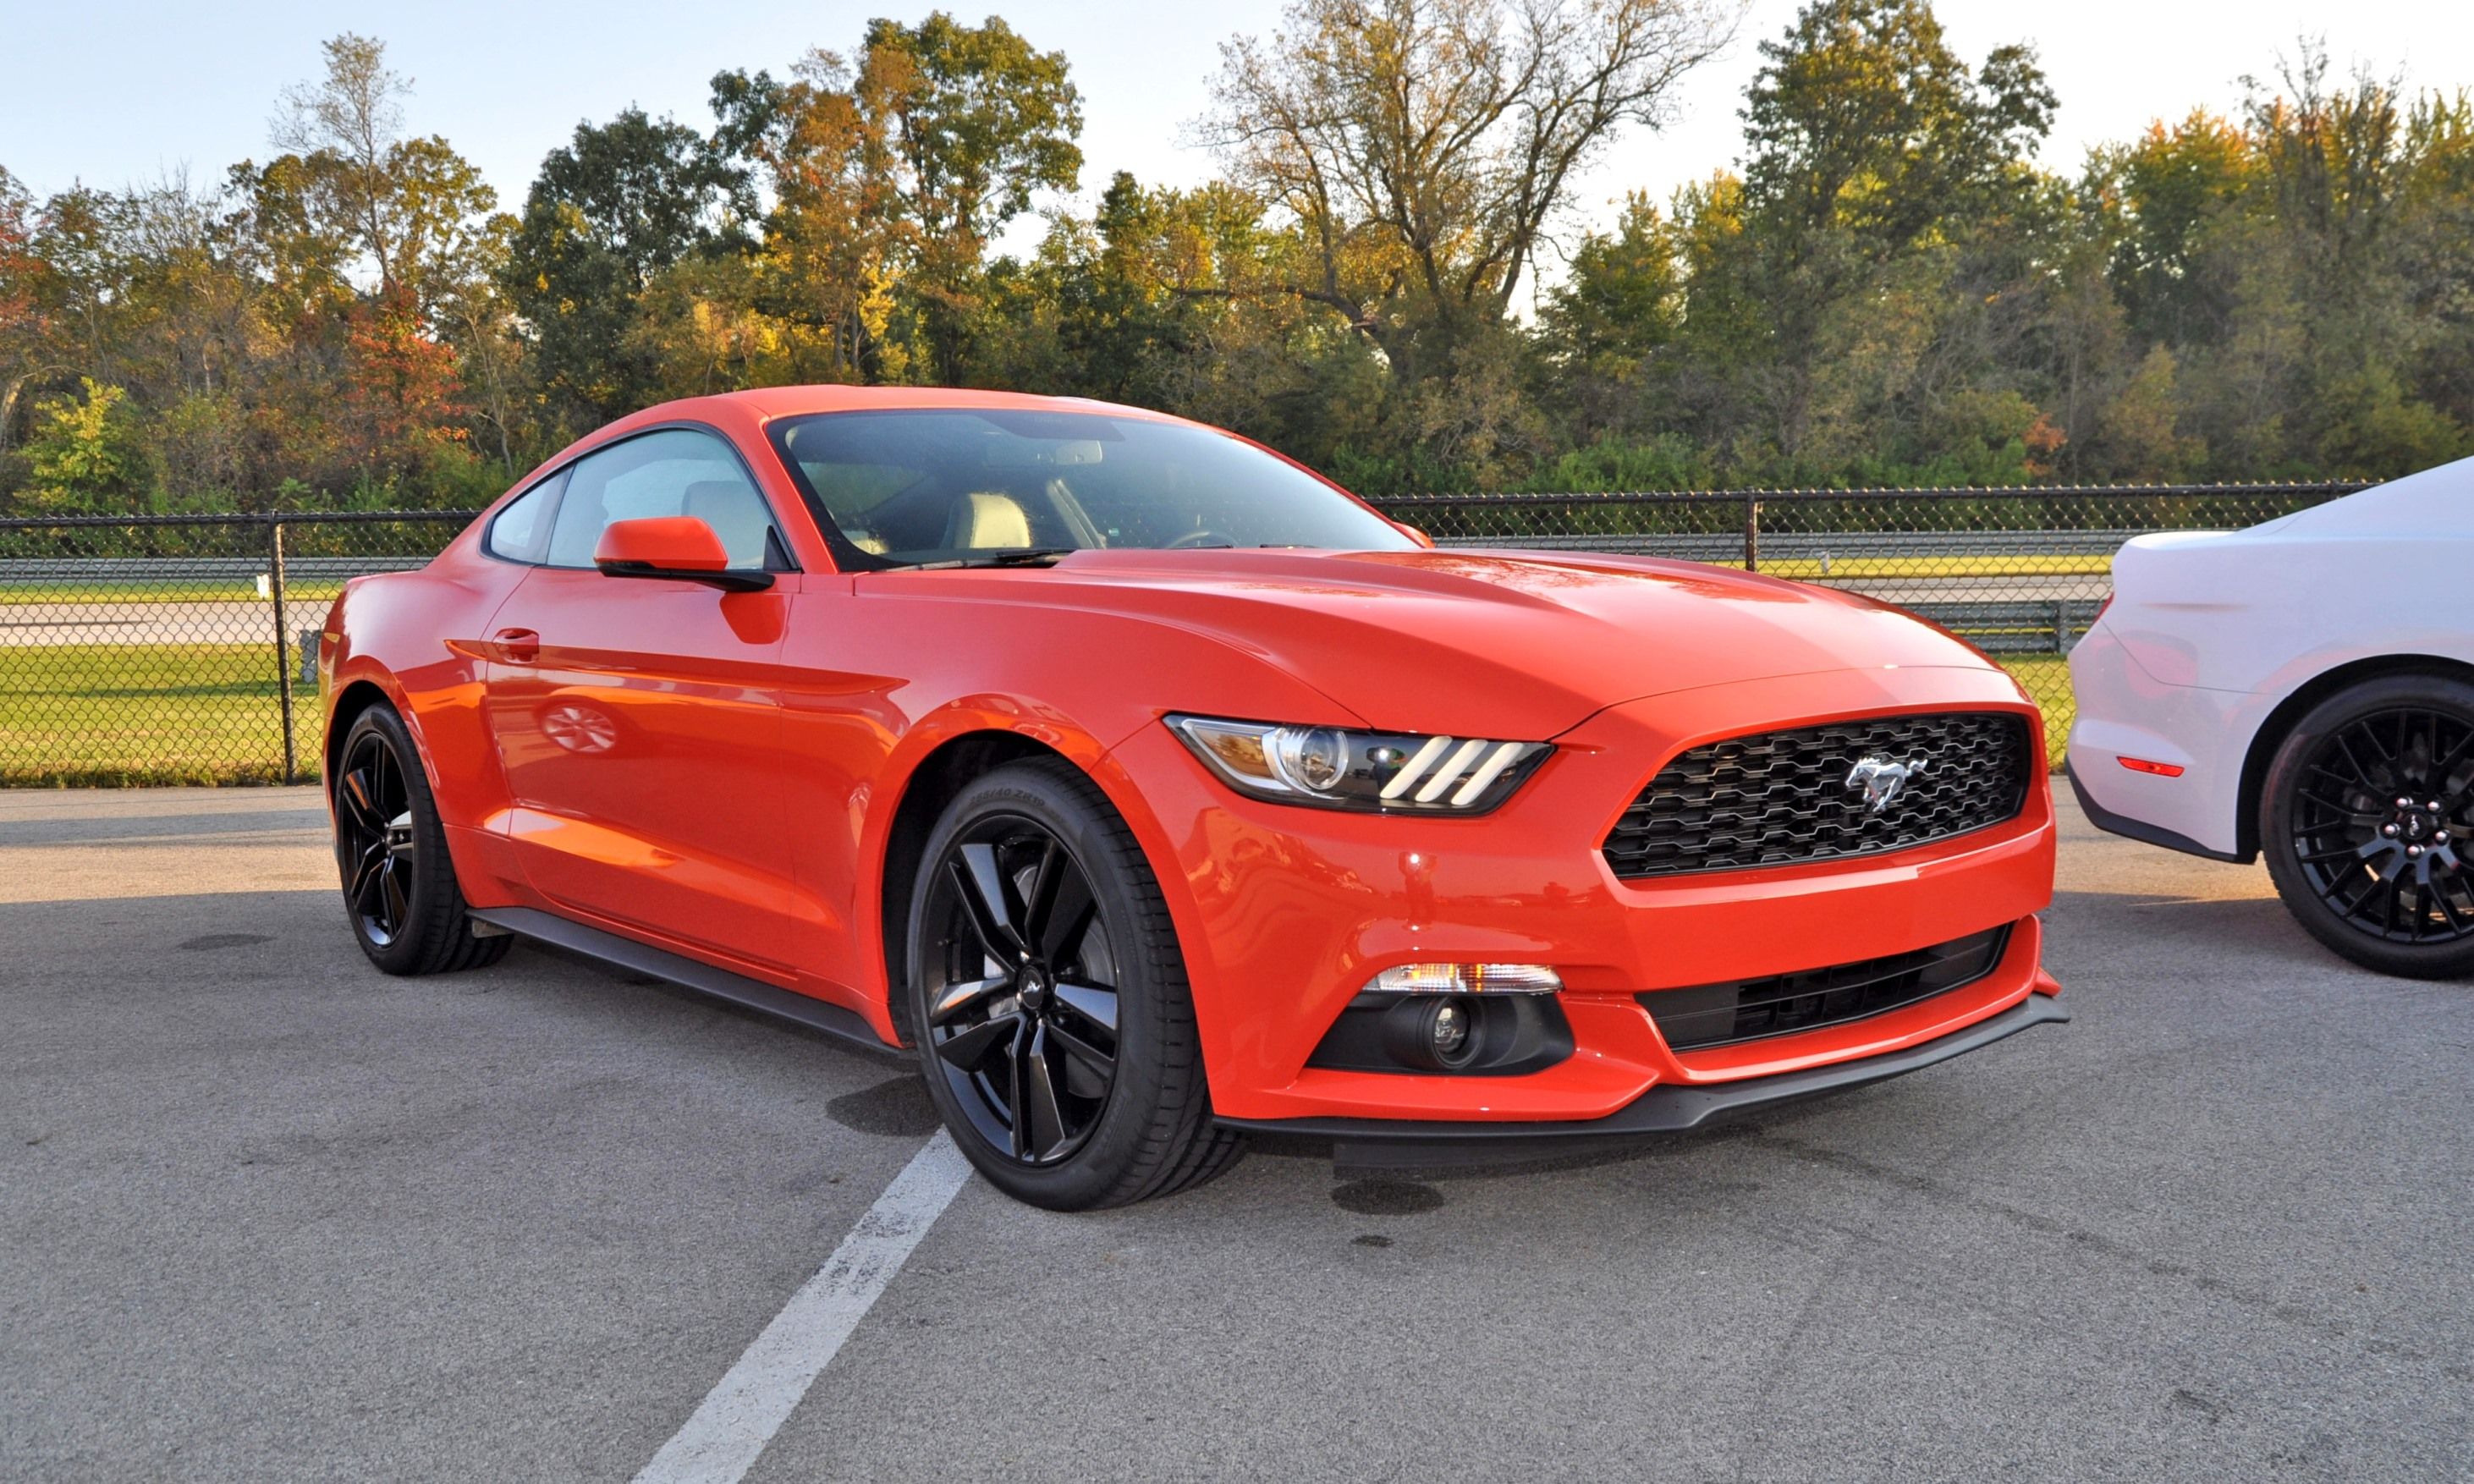 2015 mustang gt track pack review autos post. Black Bedroom Furniture Sets. Home Design Ideas